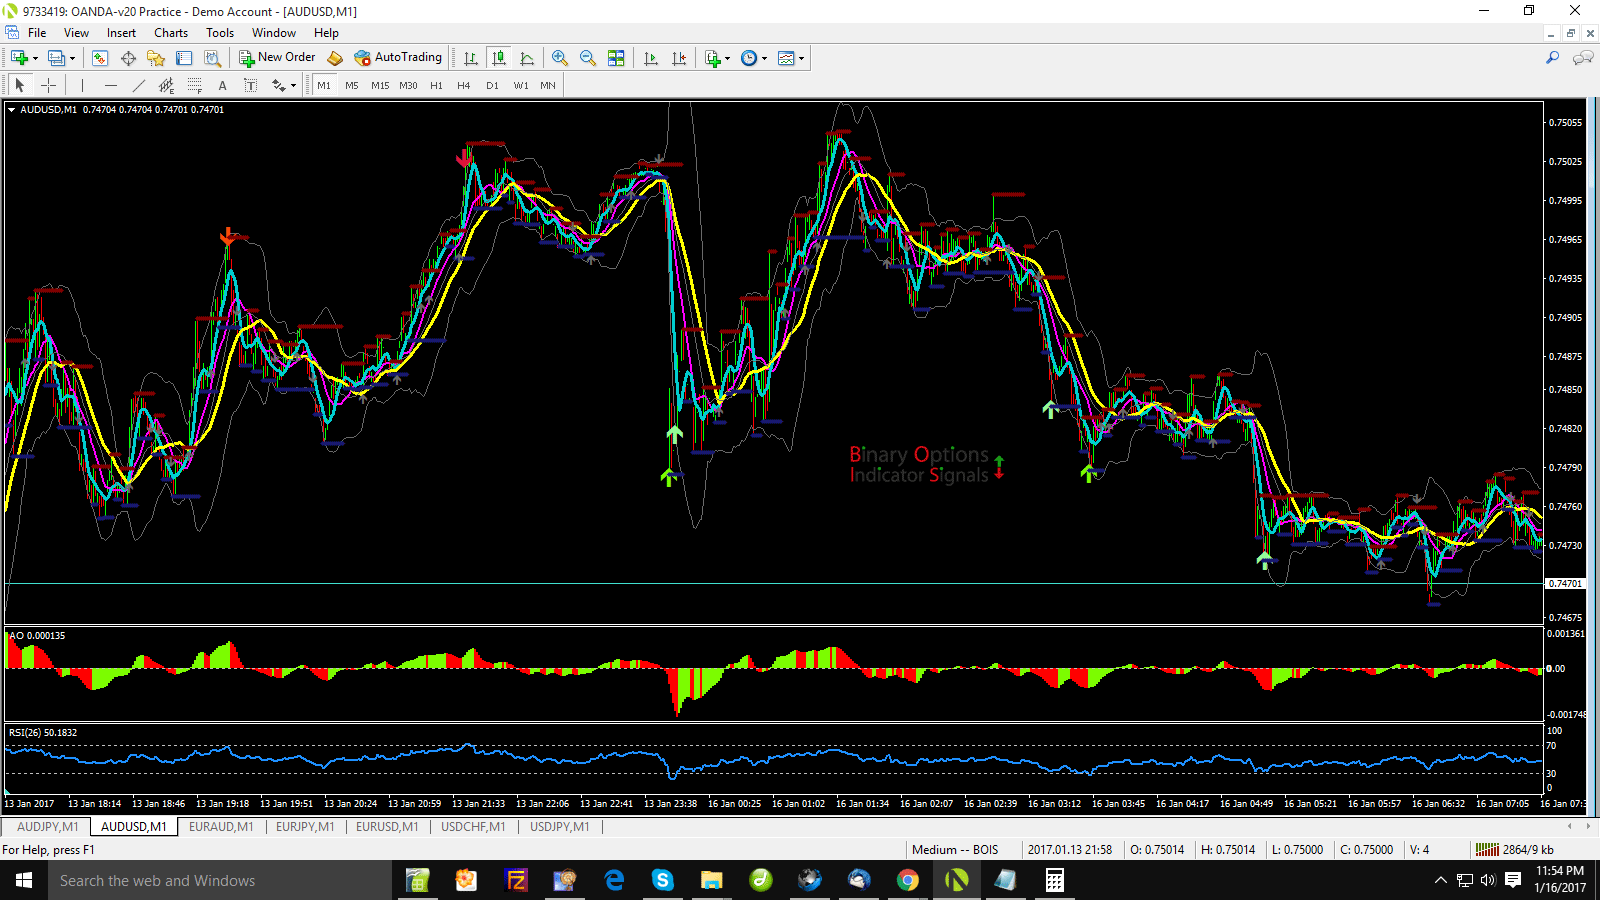 Binary options trade system